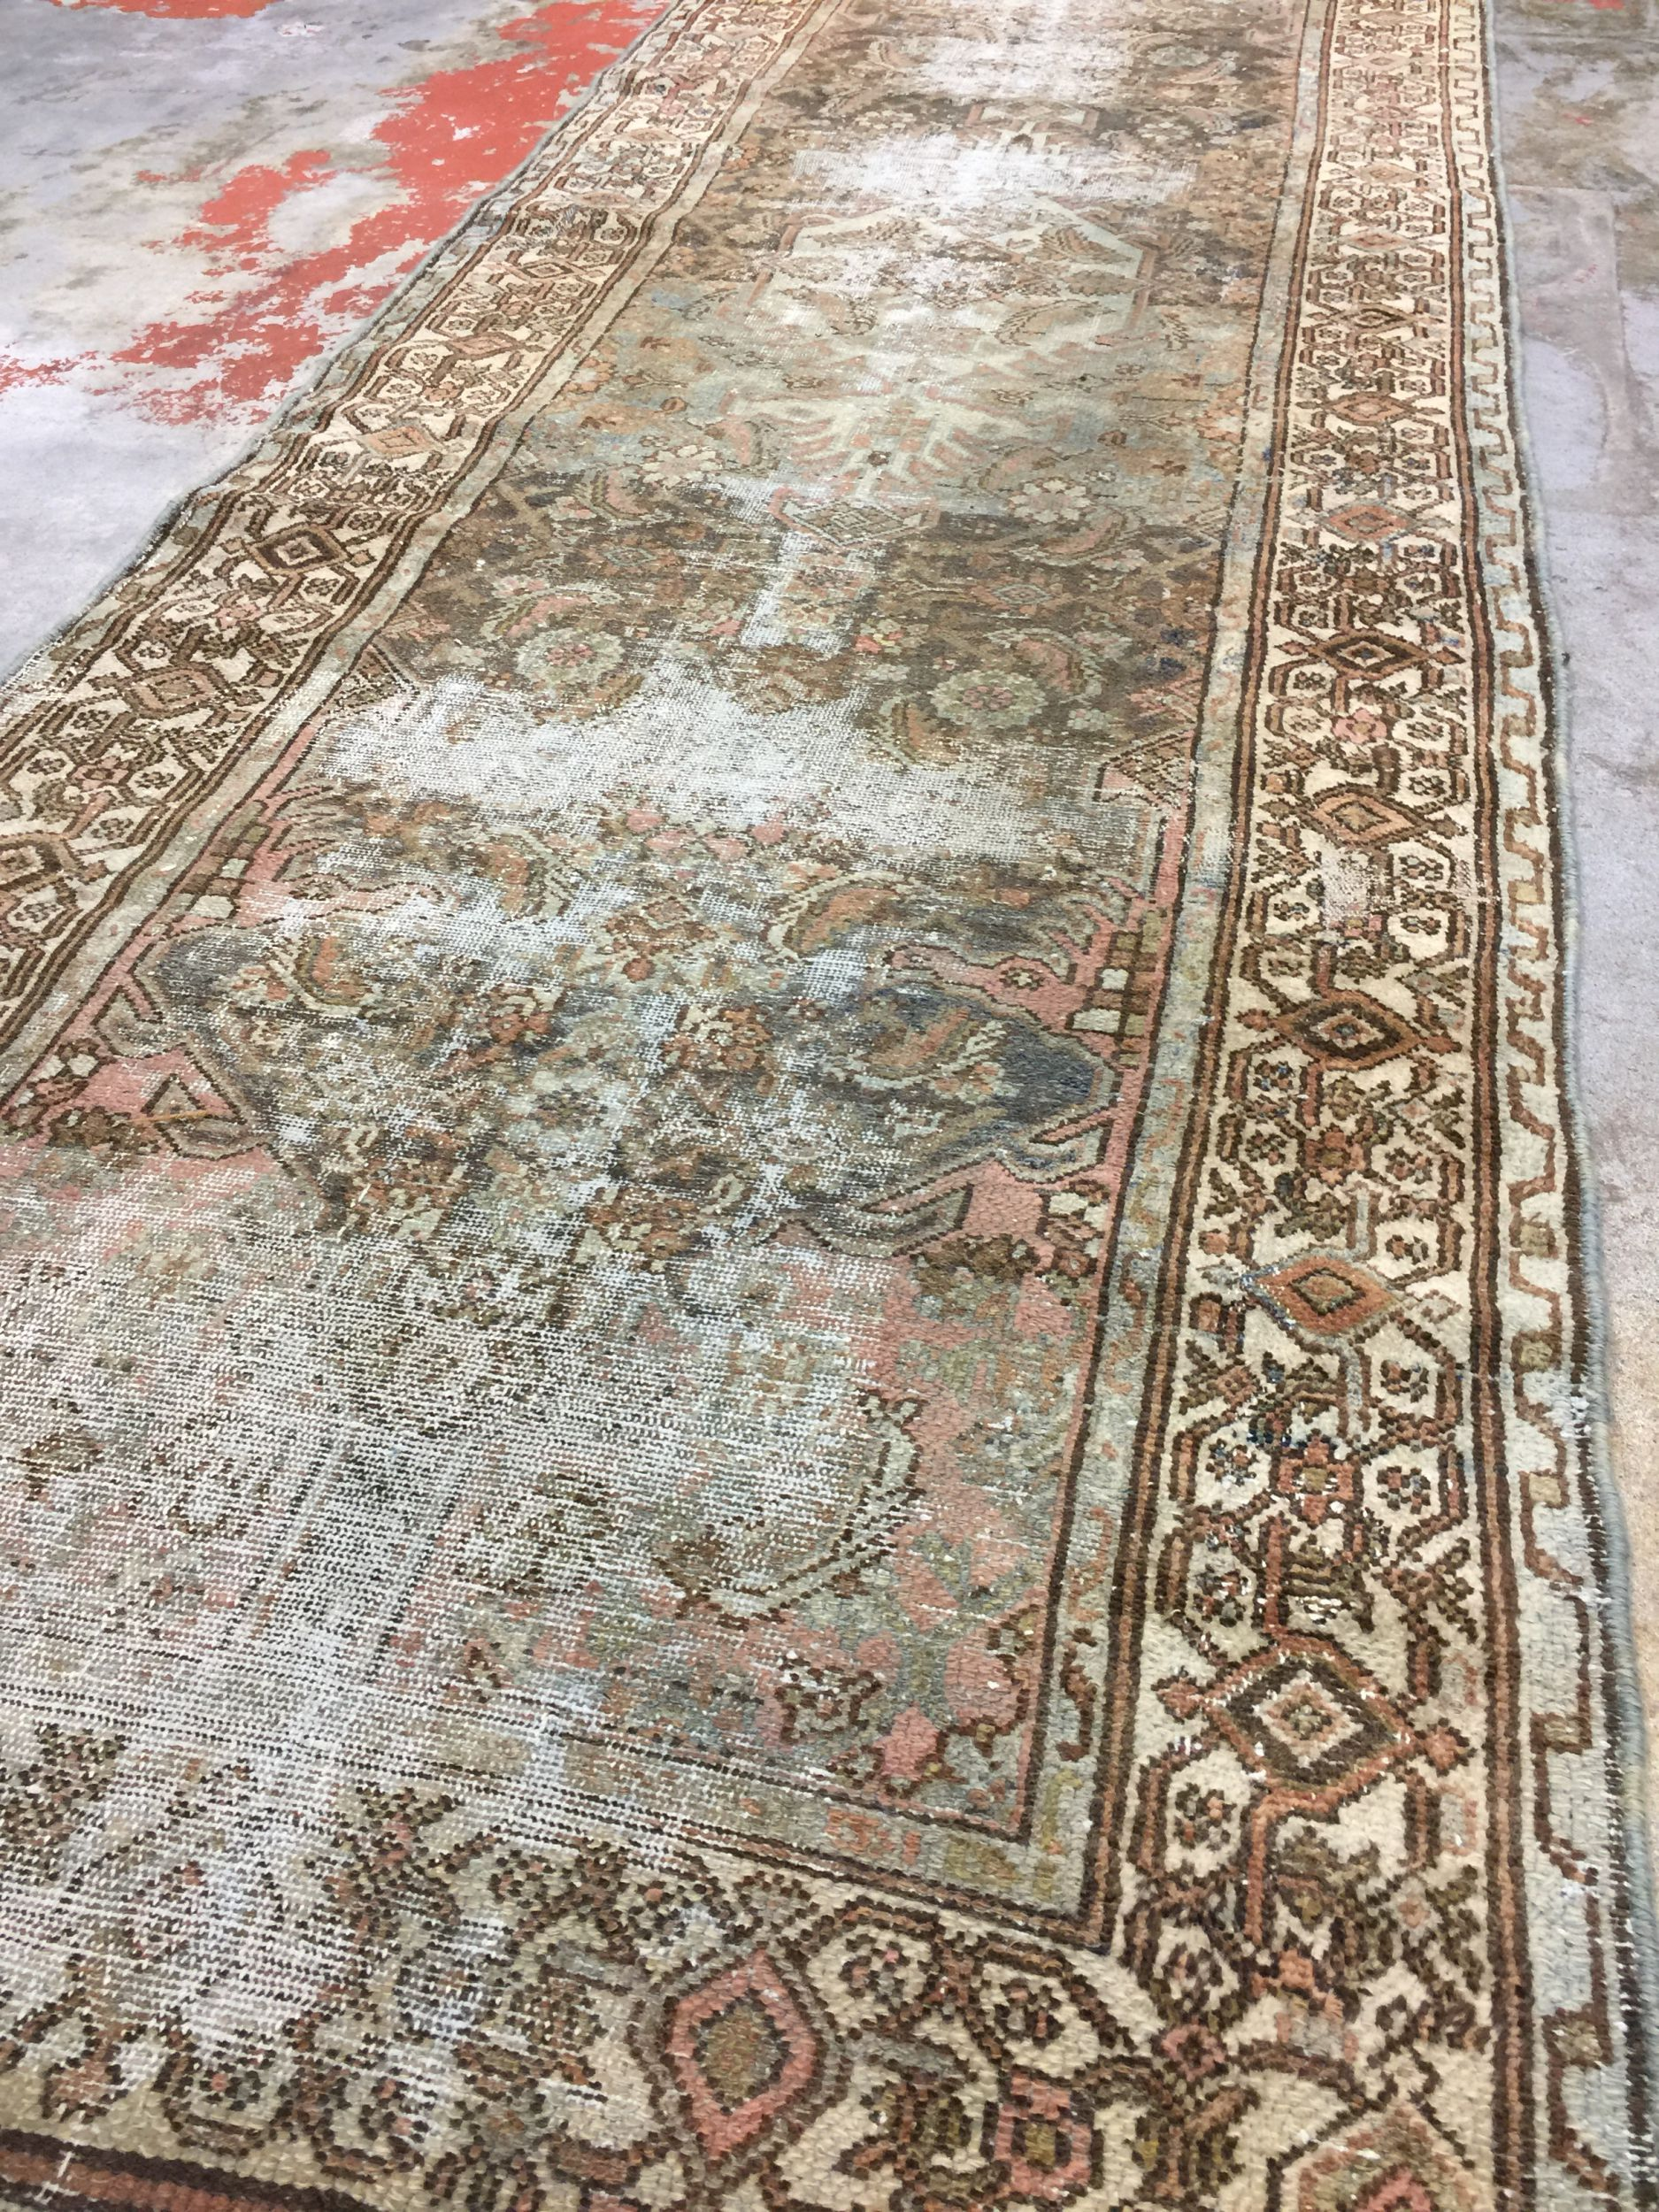 Vintage Persian Runner Rug 2 10 X 9 6 Hamadan Malayer Rug Persian Rug Runners Rug Runner Carpet Runner